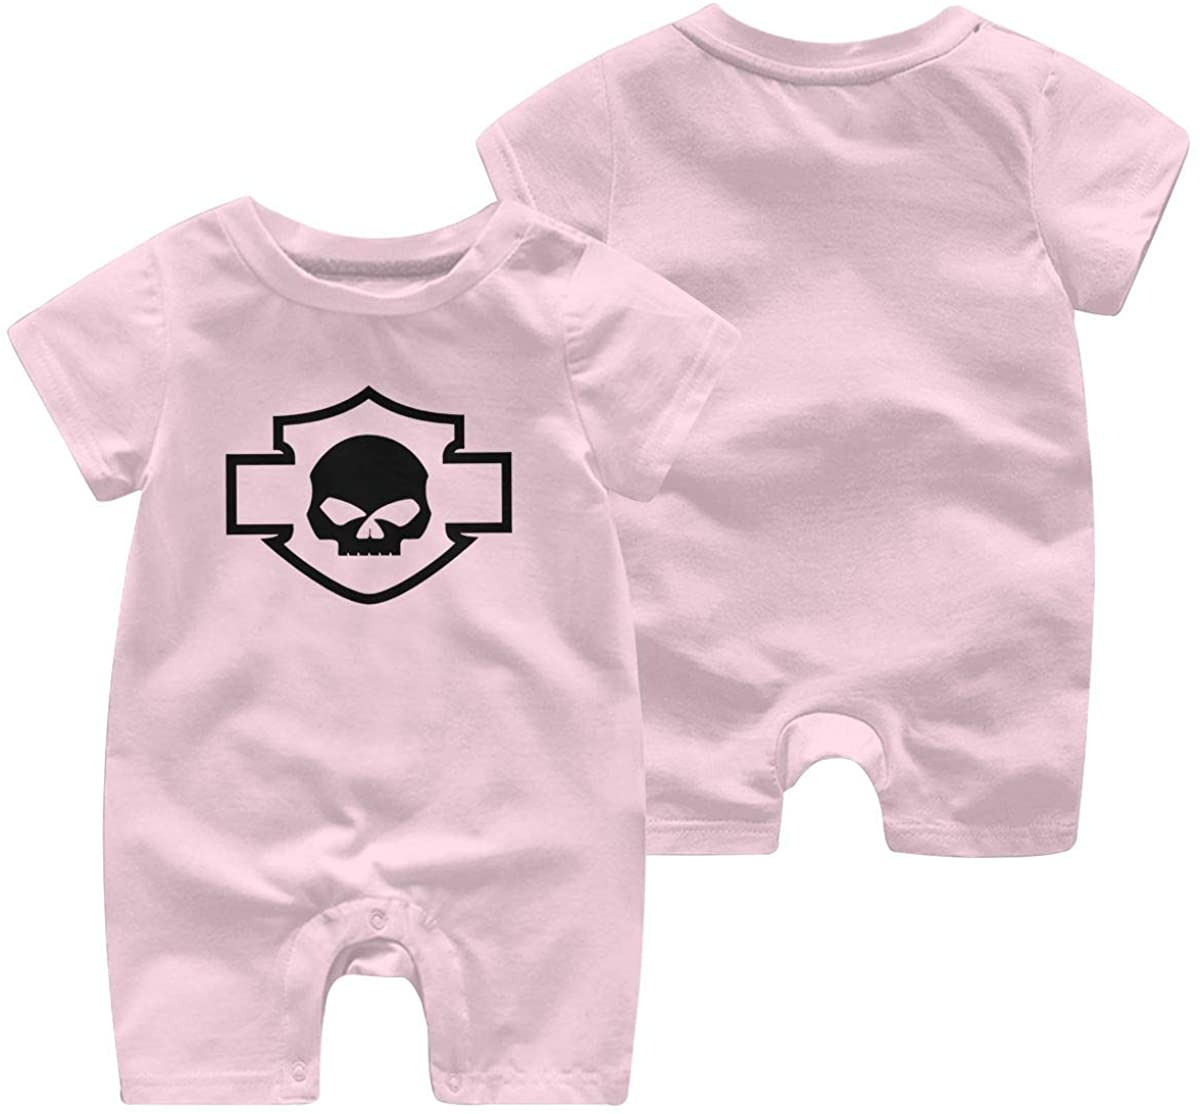 Harley Davidson One Piece Outfits Baby Solid Color Rompers with Button Kids Short Sleeve Playsuit Jumpsuits Cotton Clothing 0-3 Months Pink